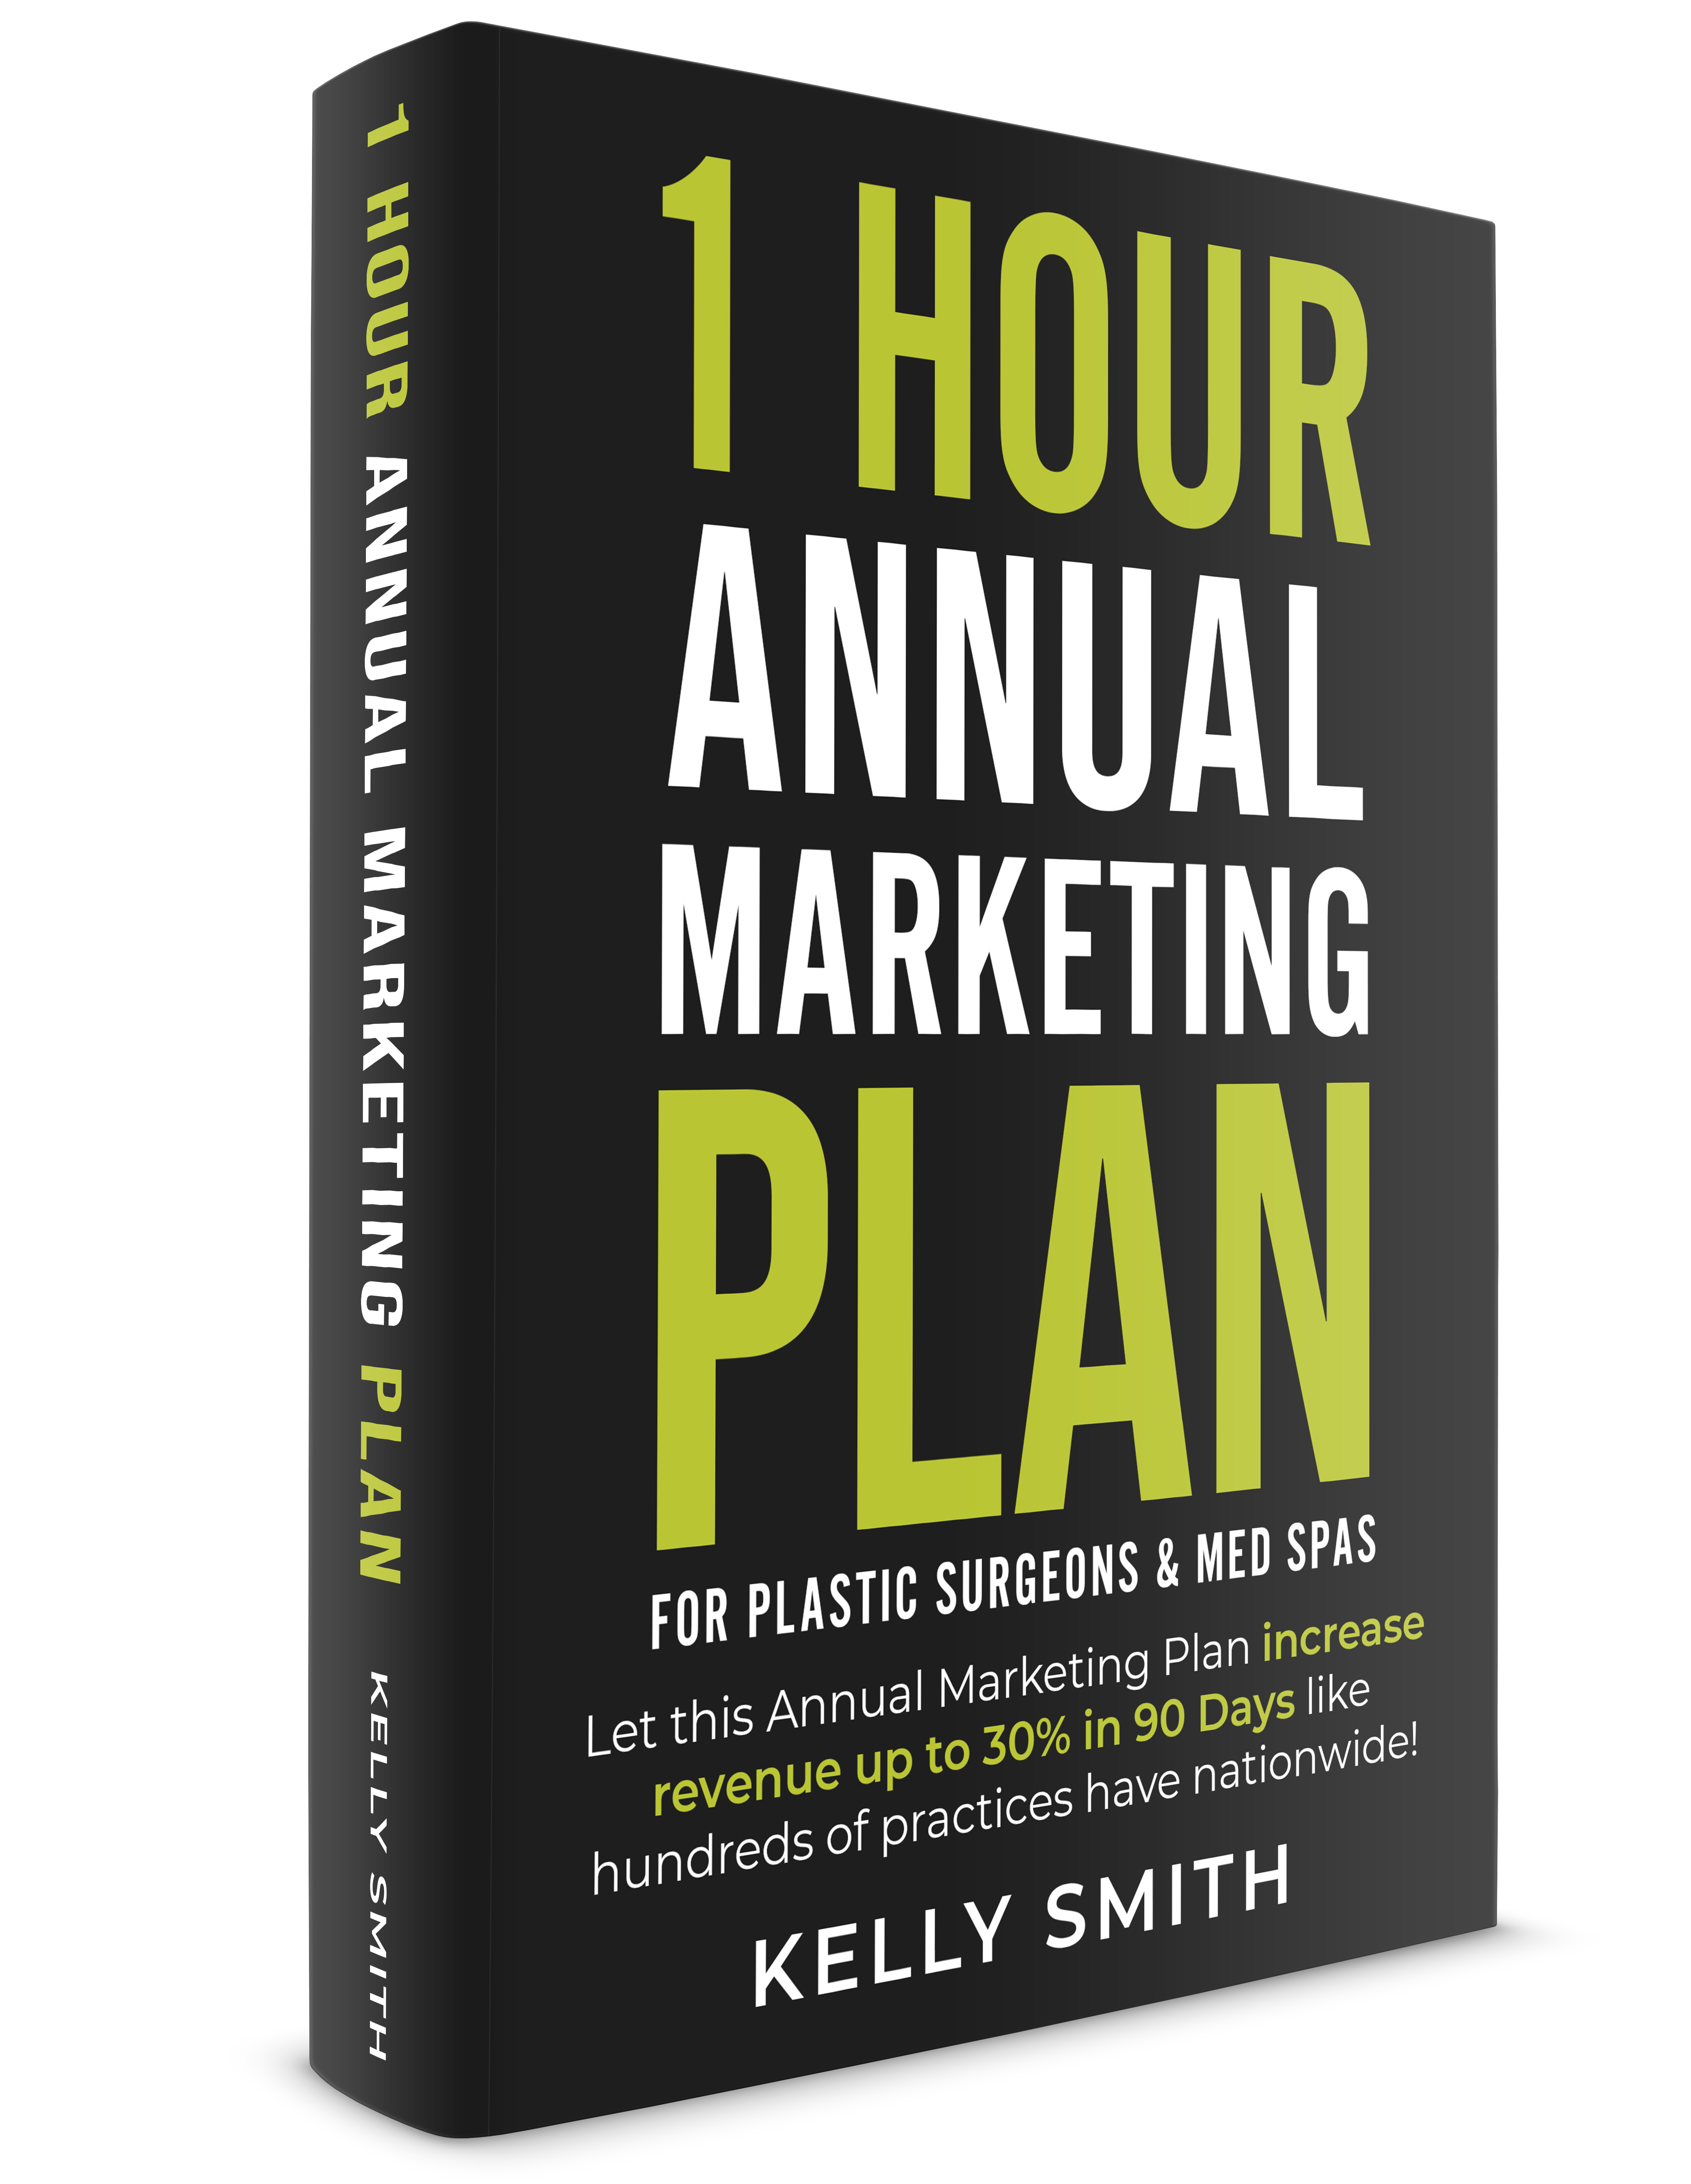 Annual-Marketing-Plan-3d